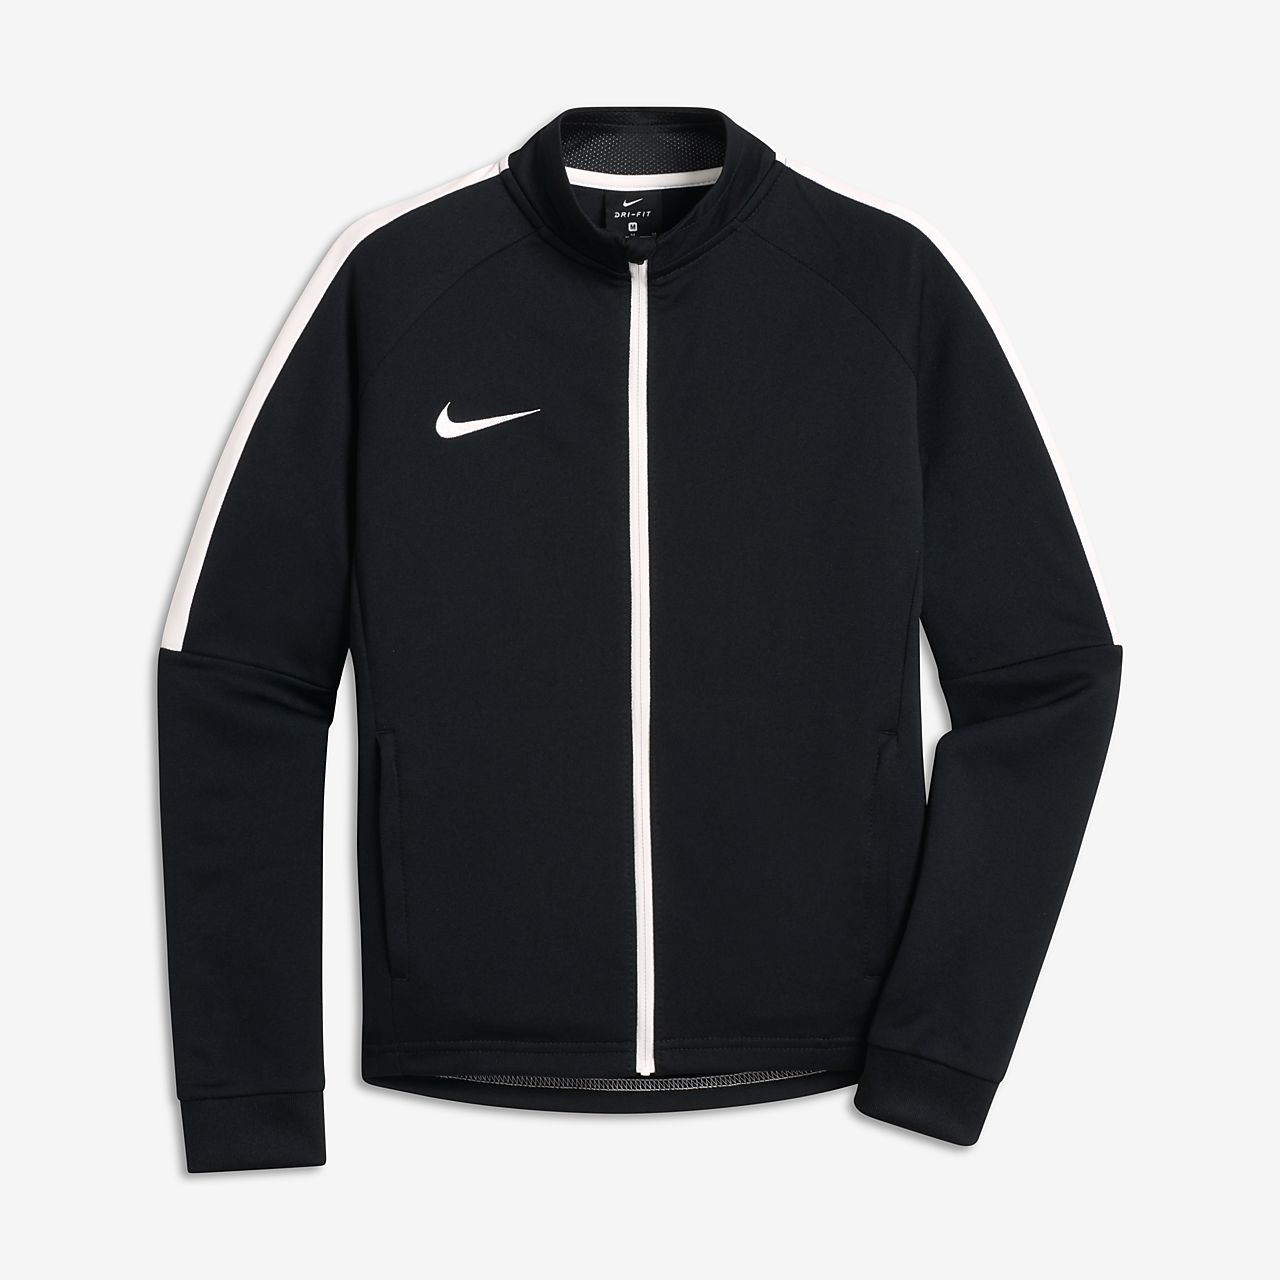 ... Nike Dri-FIT Academy Big Kids' Soccer Track Suit